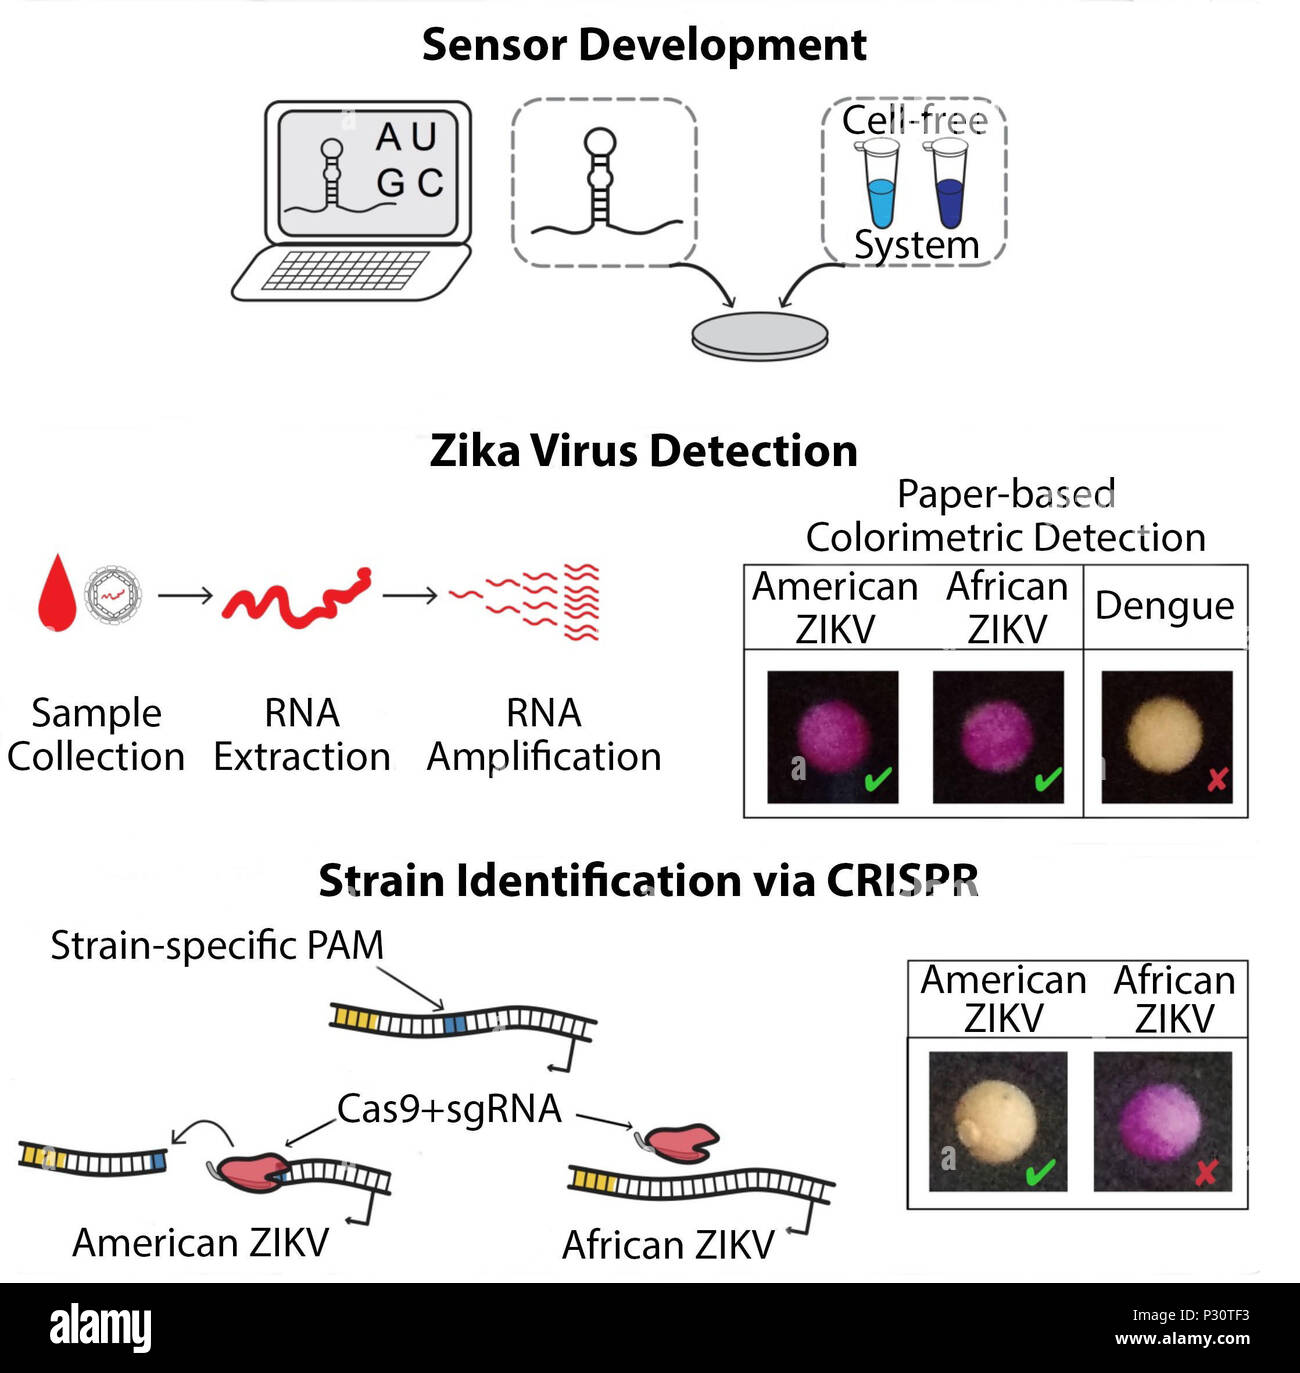 The rapid design, assembly and validation of paper-based biomolecular sensors for the  portable detection of Zika virus is shown here. Using sequence information from online databases, primers for isothermal RNA amplification and toehold switch-based RNA sensors are designed in silico using algorithms. Sensors are embedded into paper discs and freeze-dried along with a cell-free transcription and translation system, to be deployed in the field as colorimetric diagnostics. In the diagnostic test, viral RNA is extracted, isothermally amplified, and used to rehydrate the freeze-dried sensors, res - Stock Image